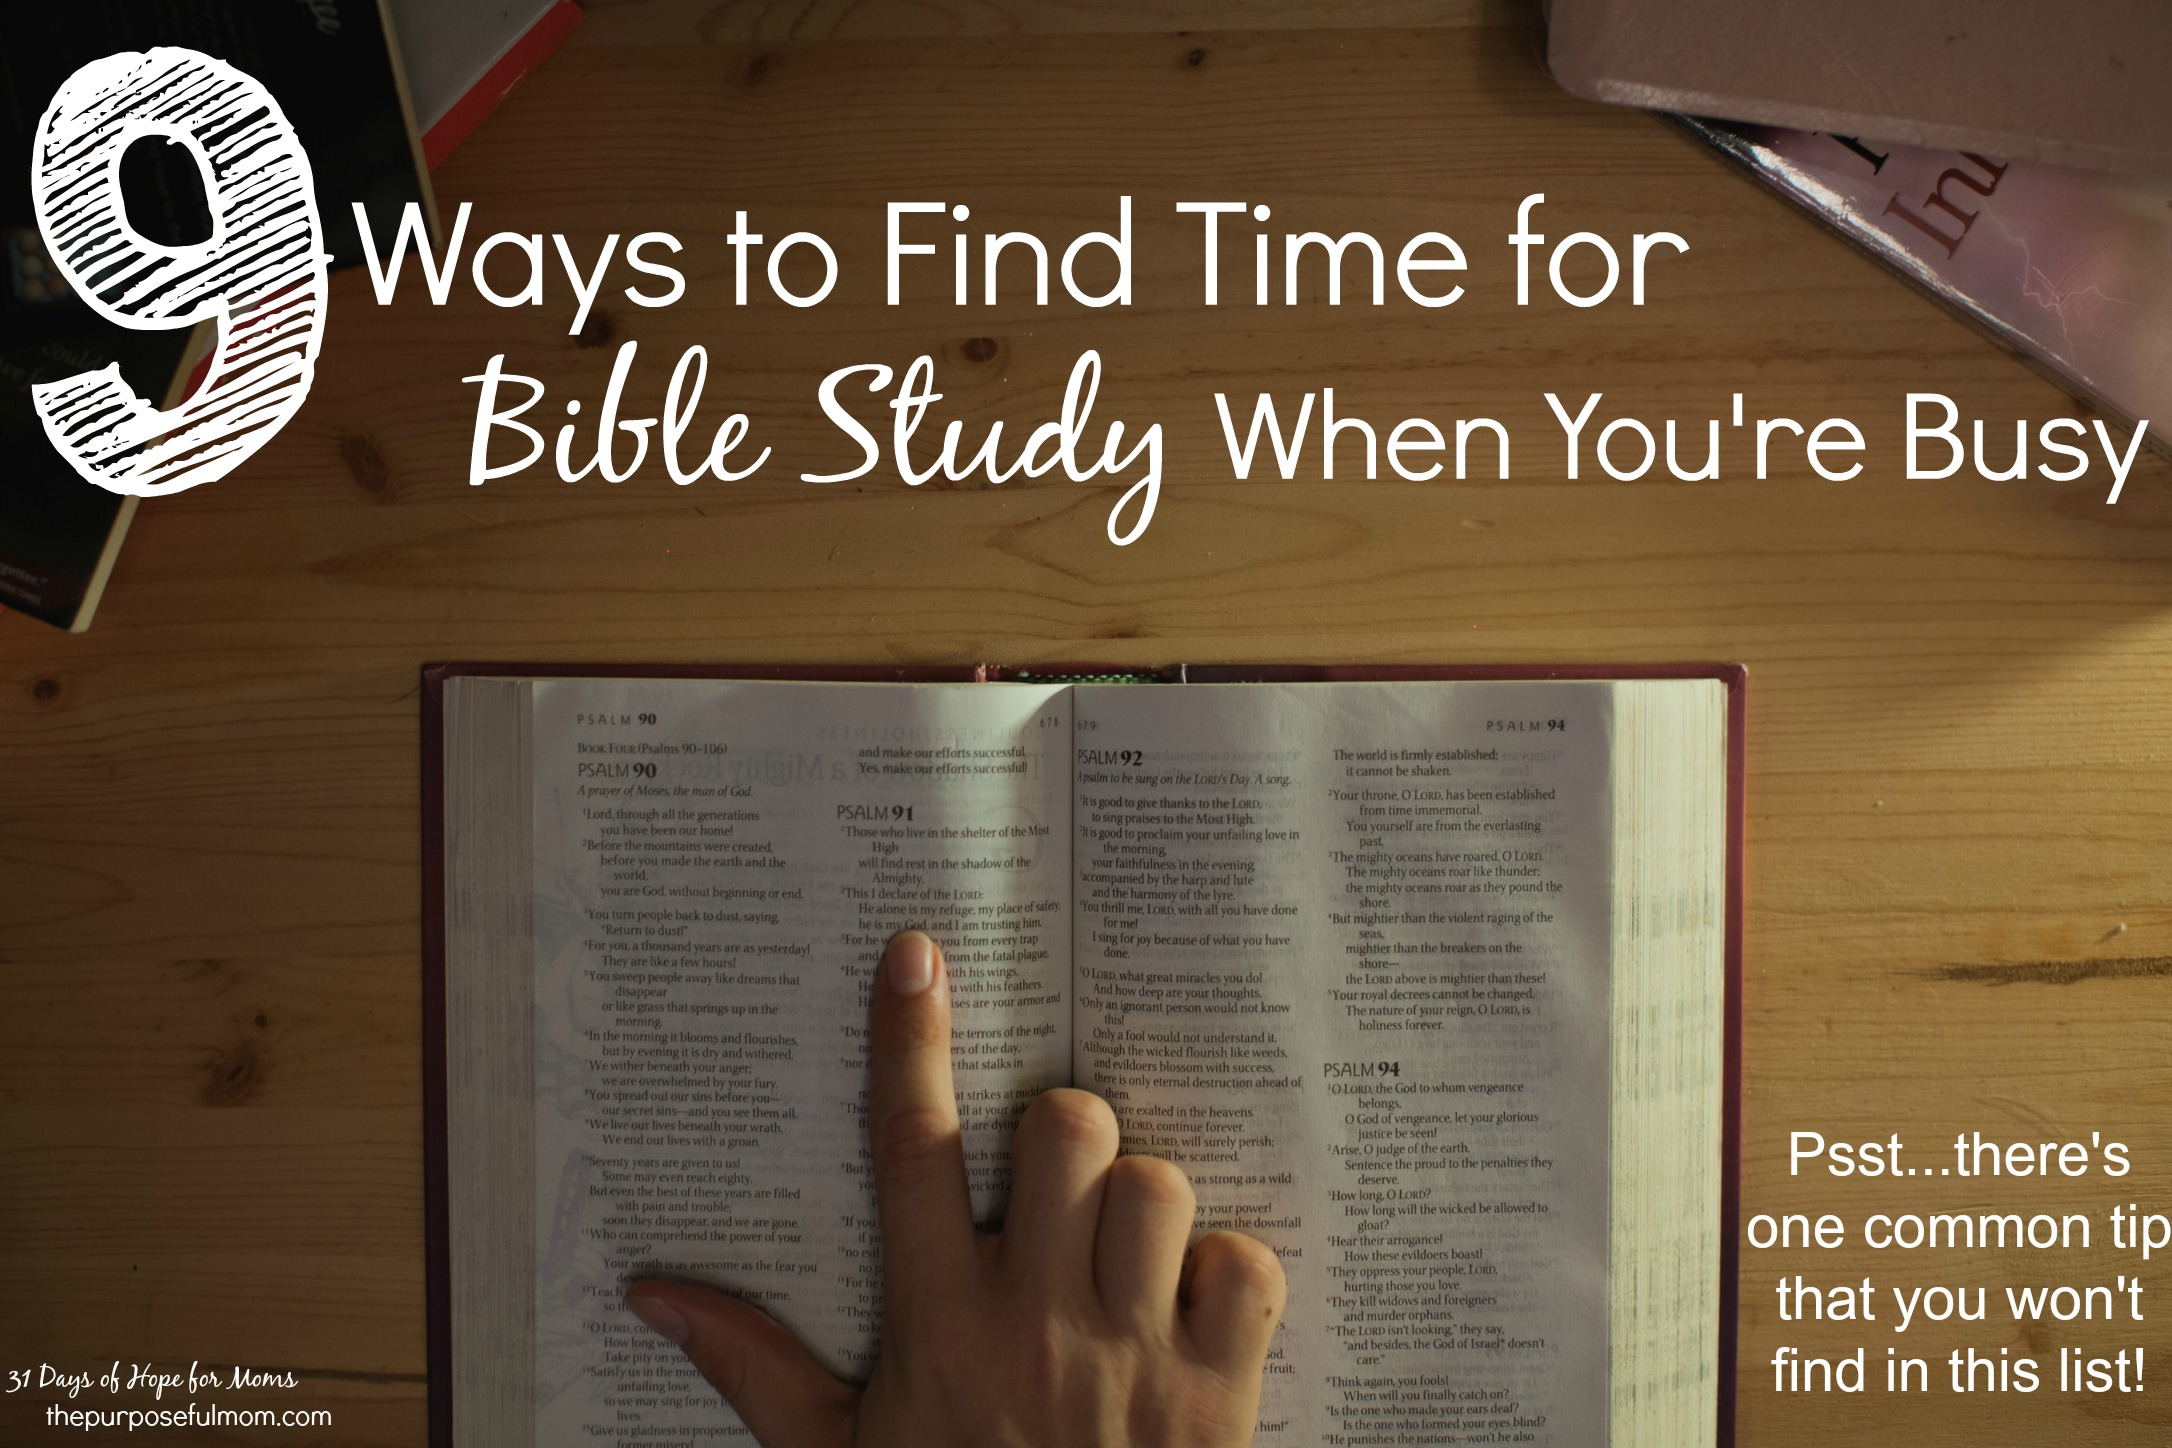 How to Find Time for Bible Study When You're Busy